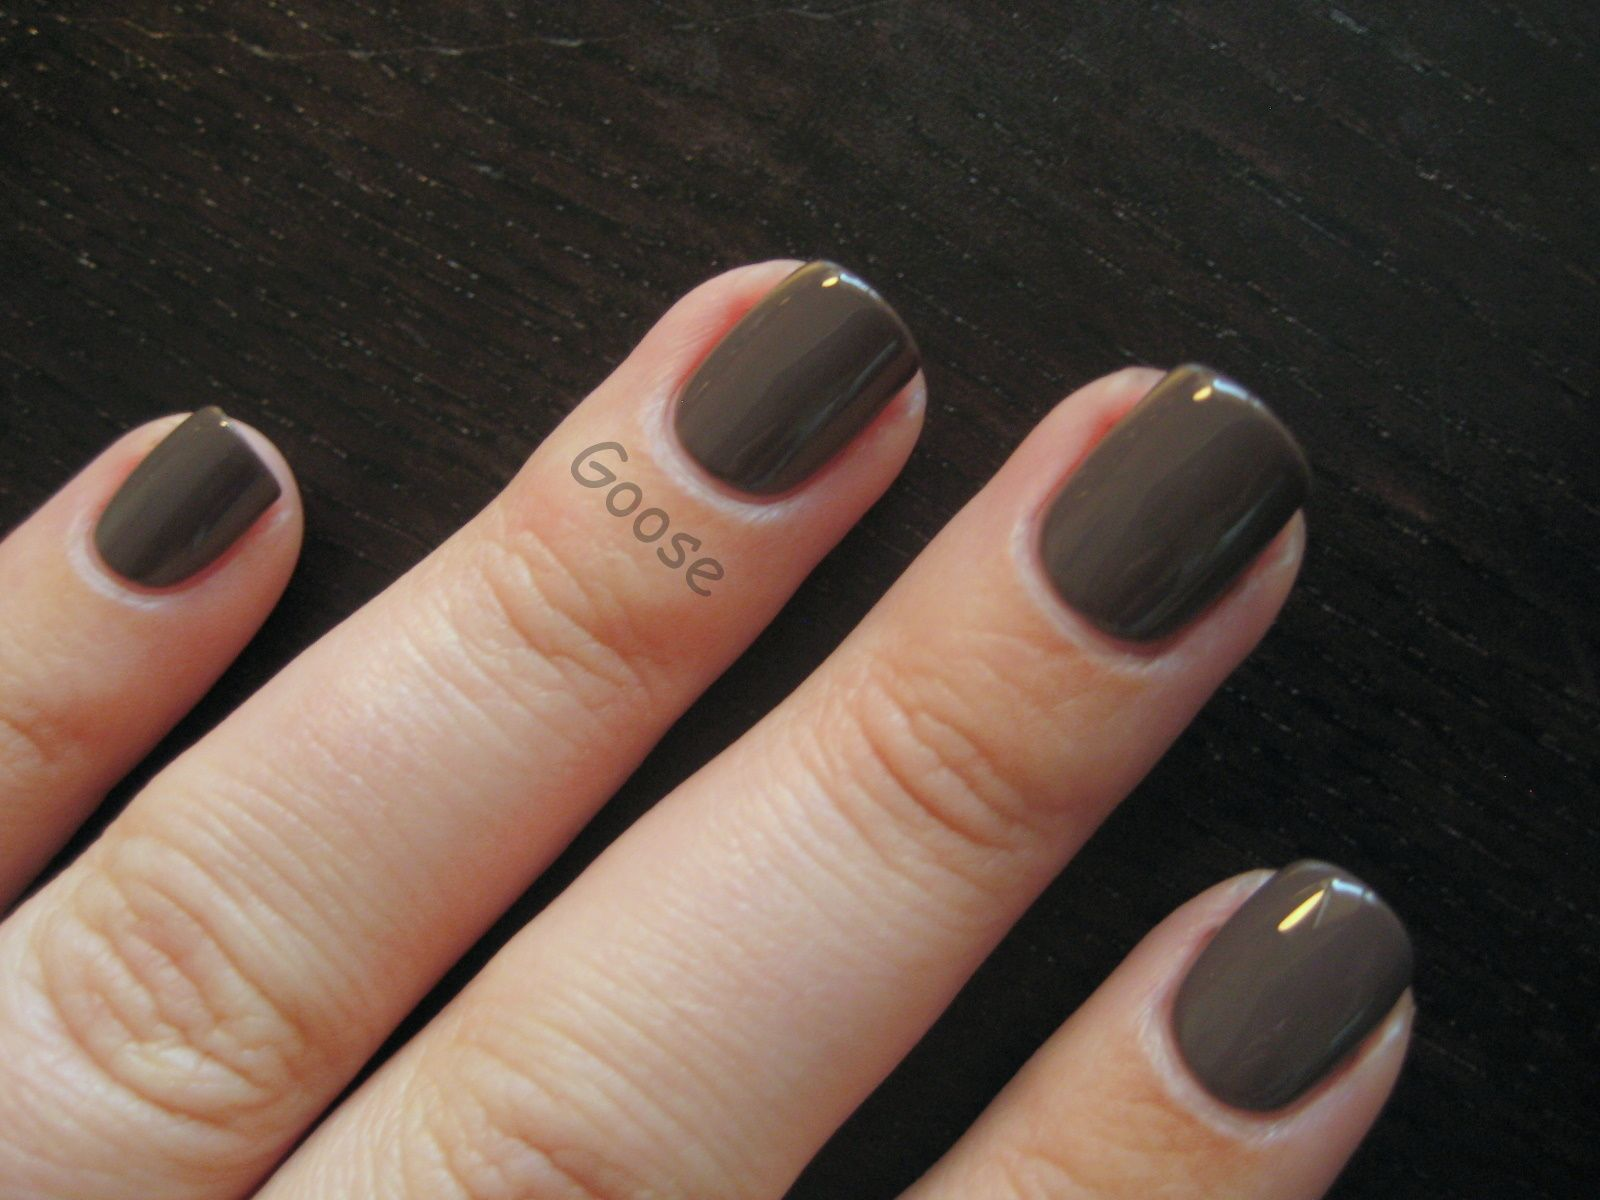 Goose\'s Glitter: New Nail Shape + Old Favorite | Nails | Pinterest ...